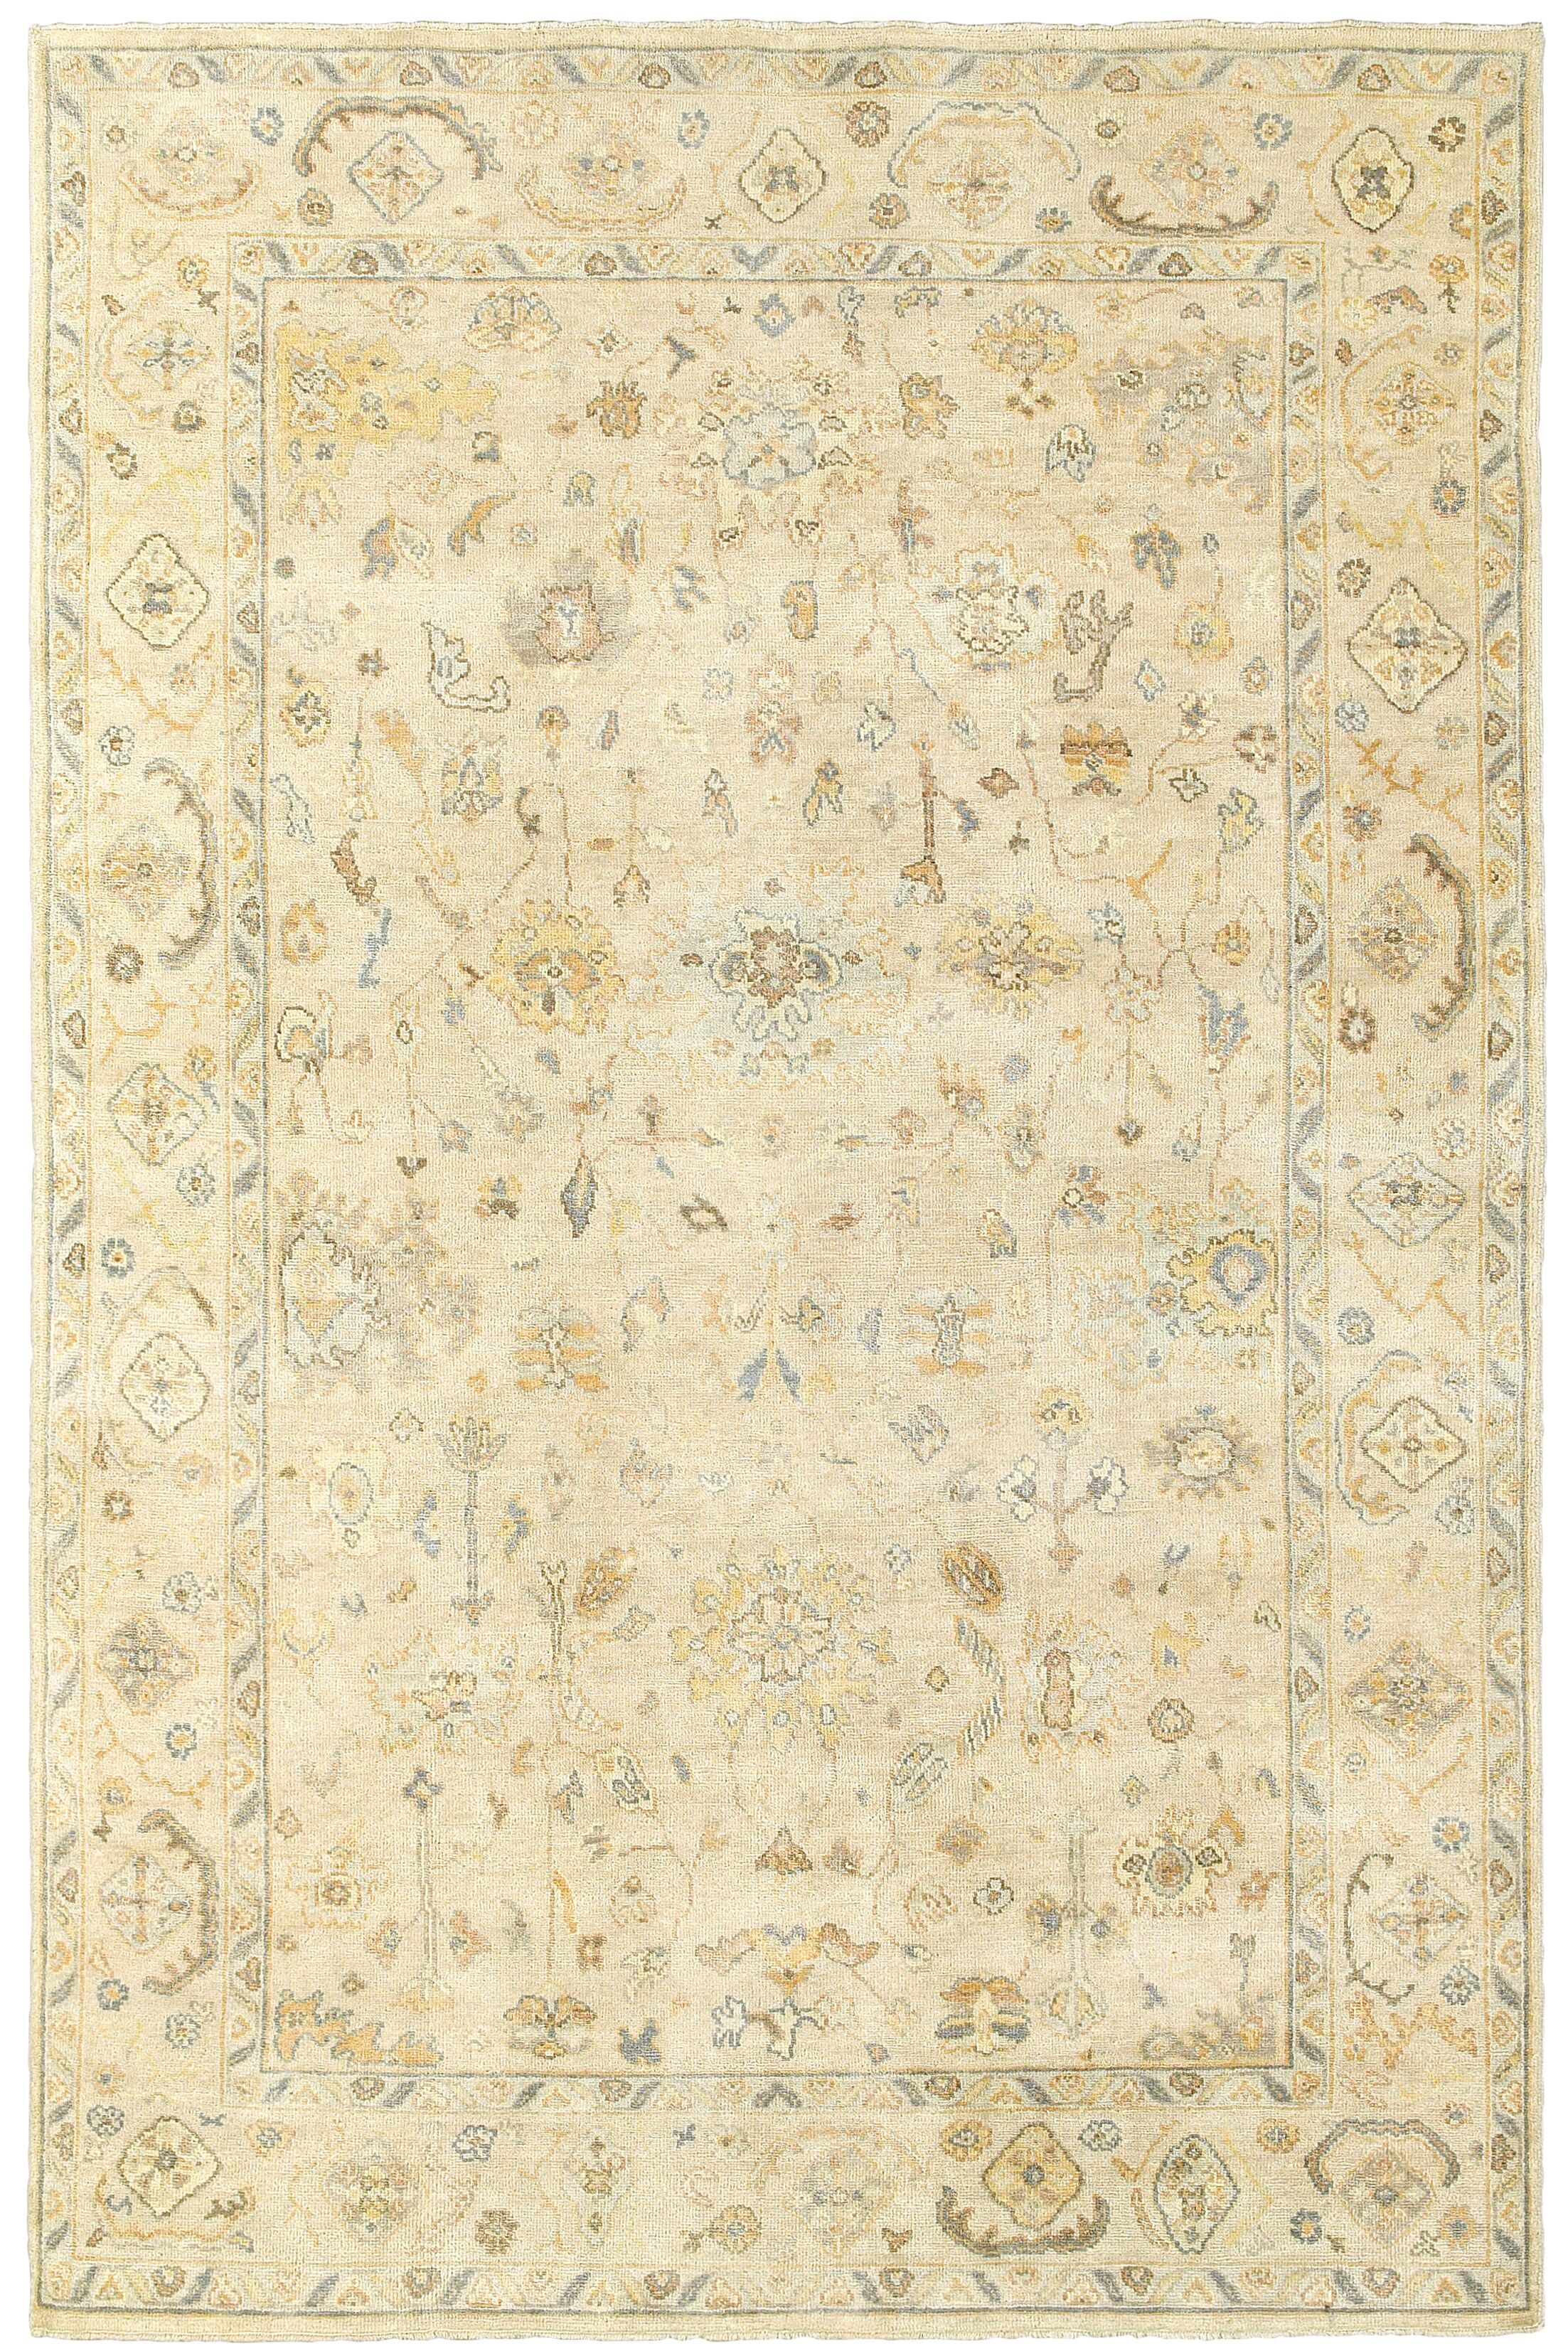 Palace Hand-Knotted Beige Area Rug Rug Size: Rectangle 10' x 14'